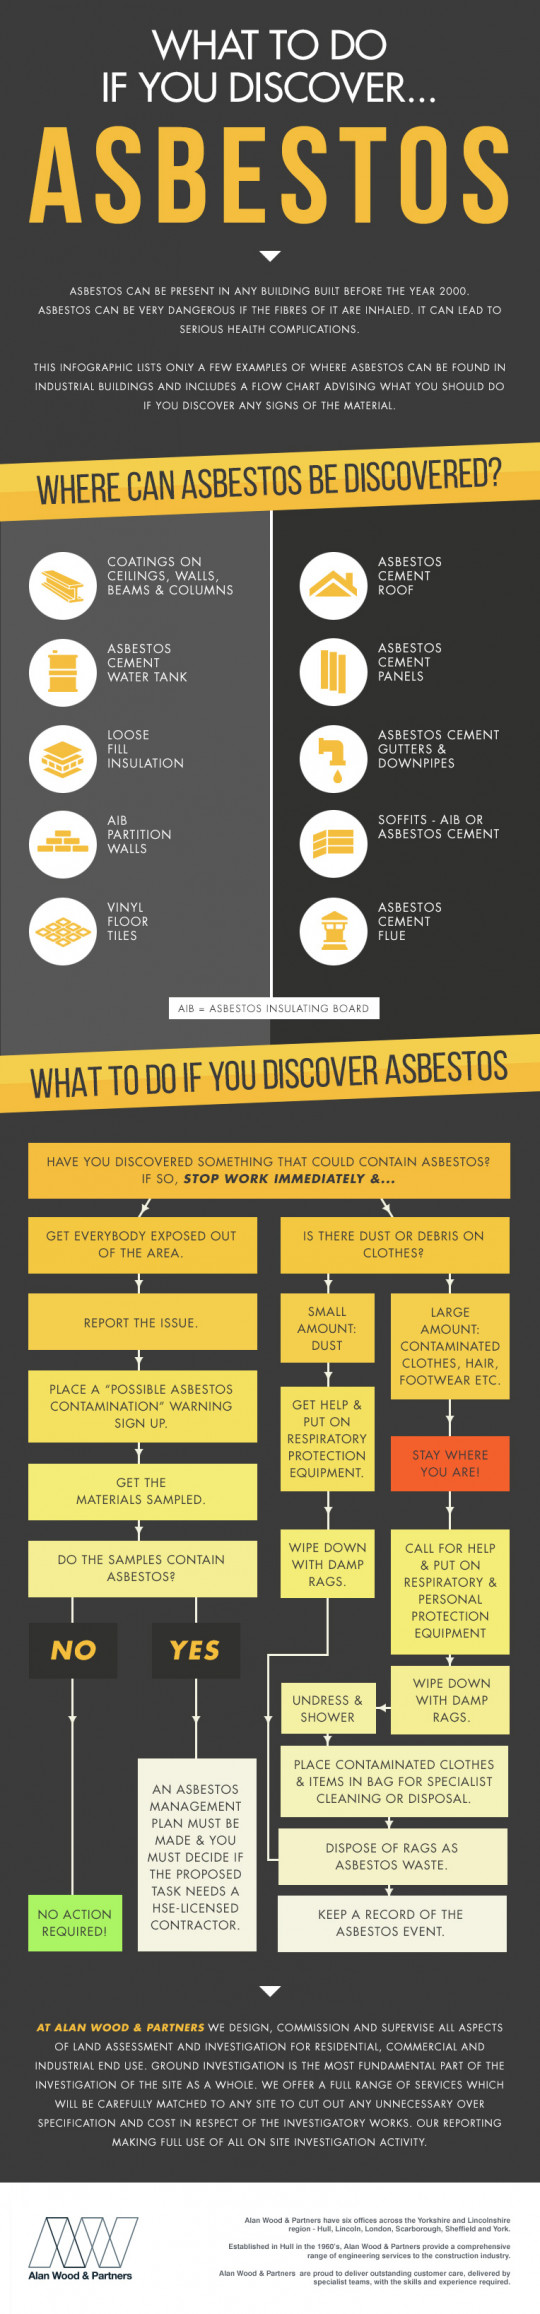 What to do if you discover asbestos